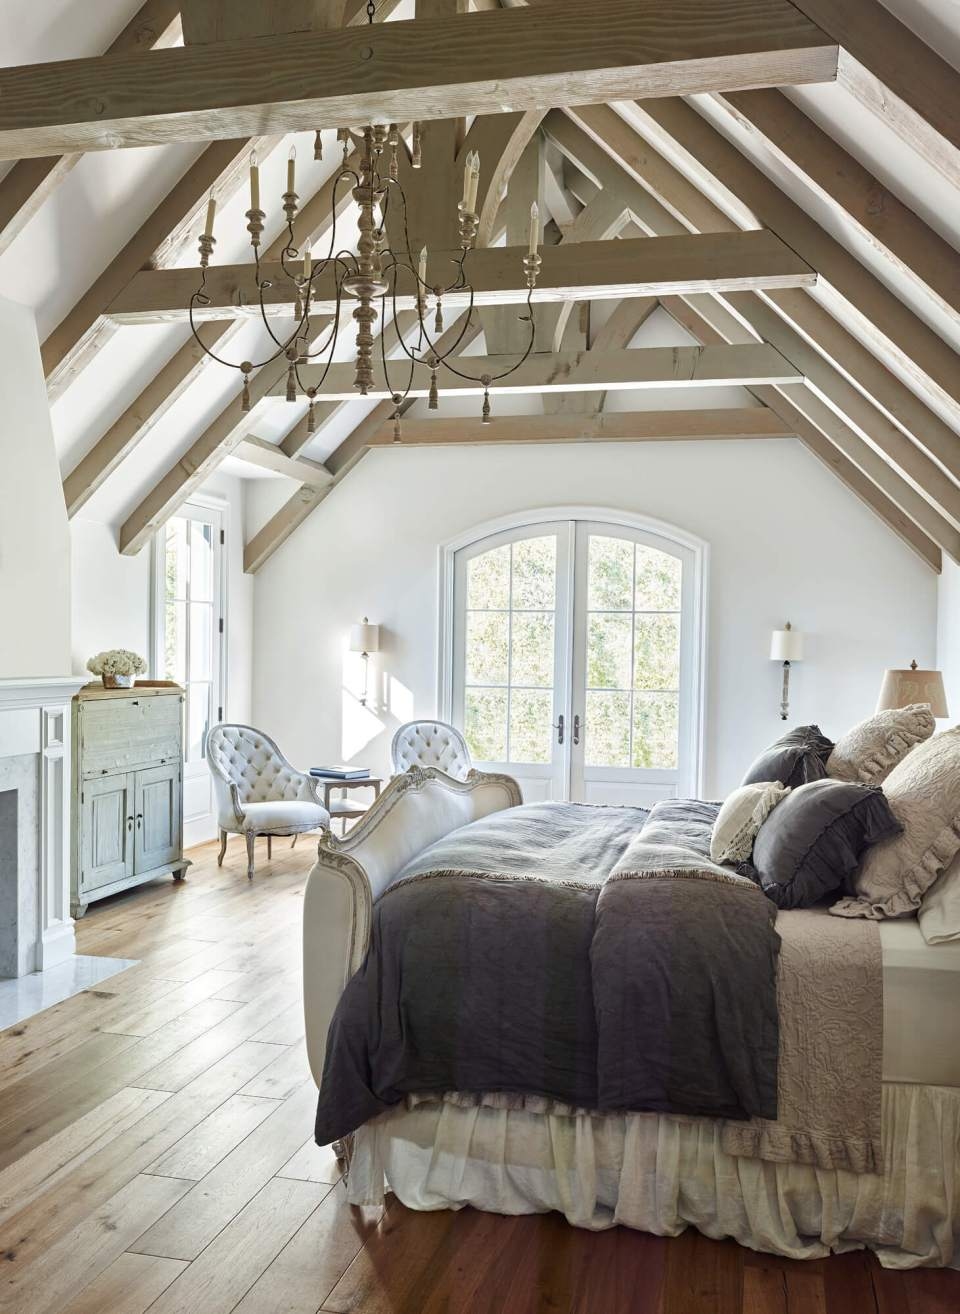 Chandelier and exposed beams